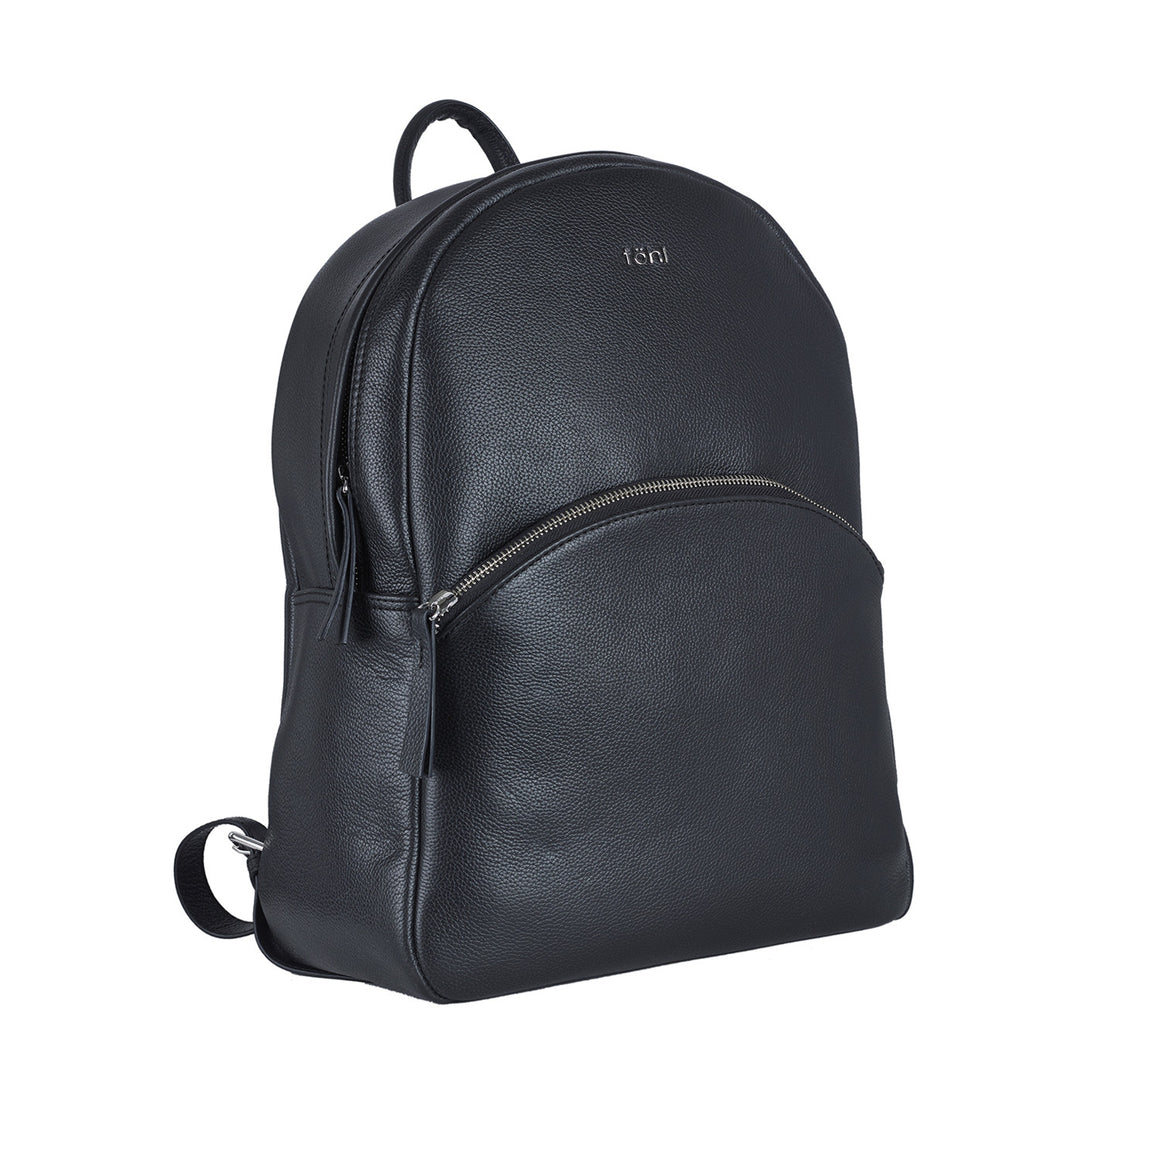 BP 0003 - TOHL CHENA WOMEN'S ZIP THROUGH BACKPACK - CHARCOAL BLACK